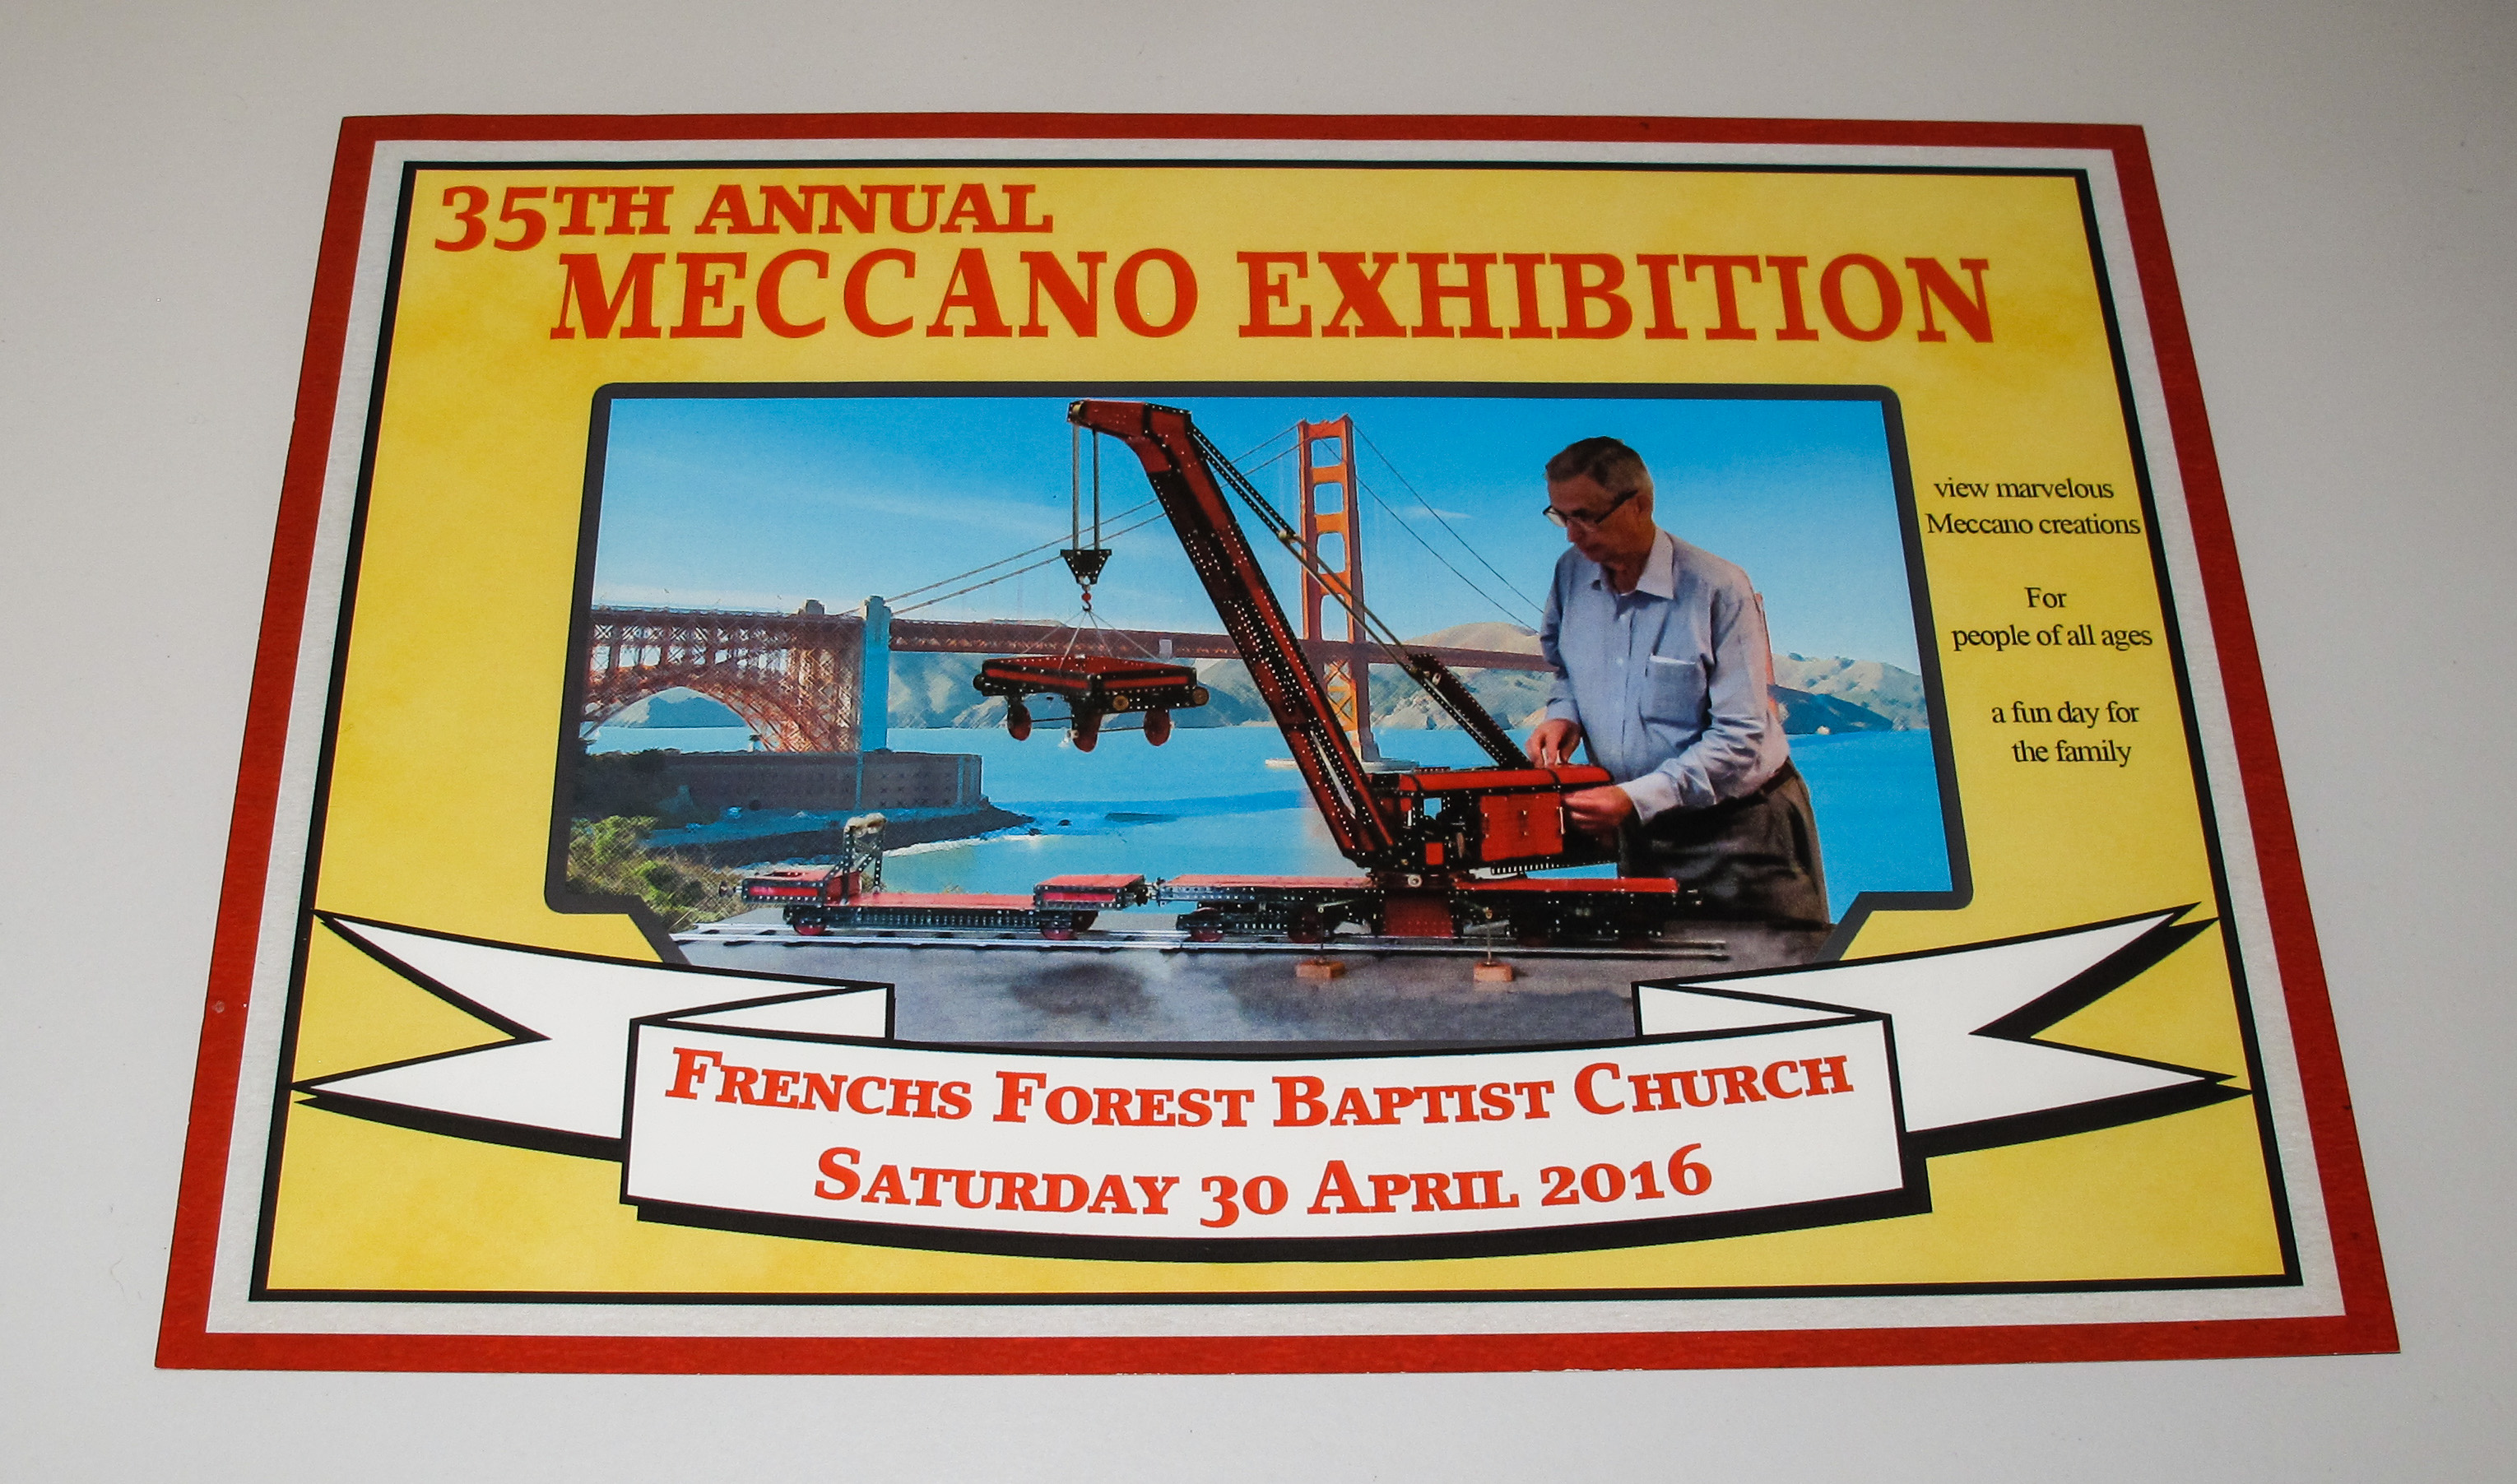 Flyer for the 35th Annual Meccano Exhibition. The flyer has a thick yellow border with the exhibition title at the top and a banner giving the location and date at the bottom (Frenchs Forest Baptist Church, Saturday 30 April, 2016). Inside the border is a photograph of an older man operating a large model crane.